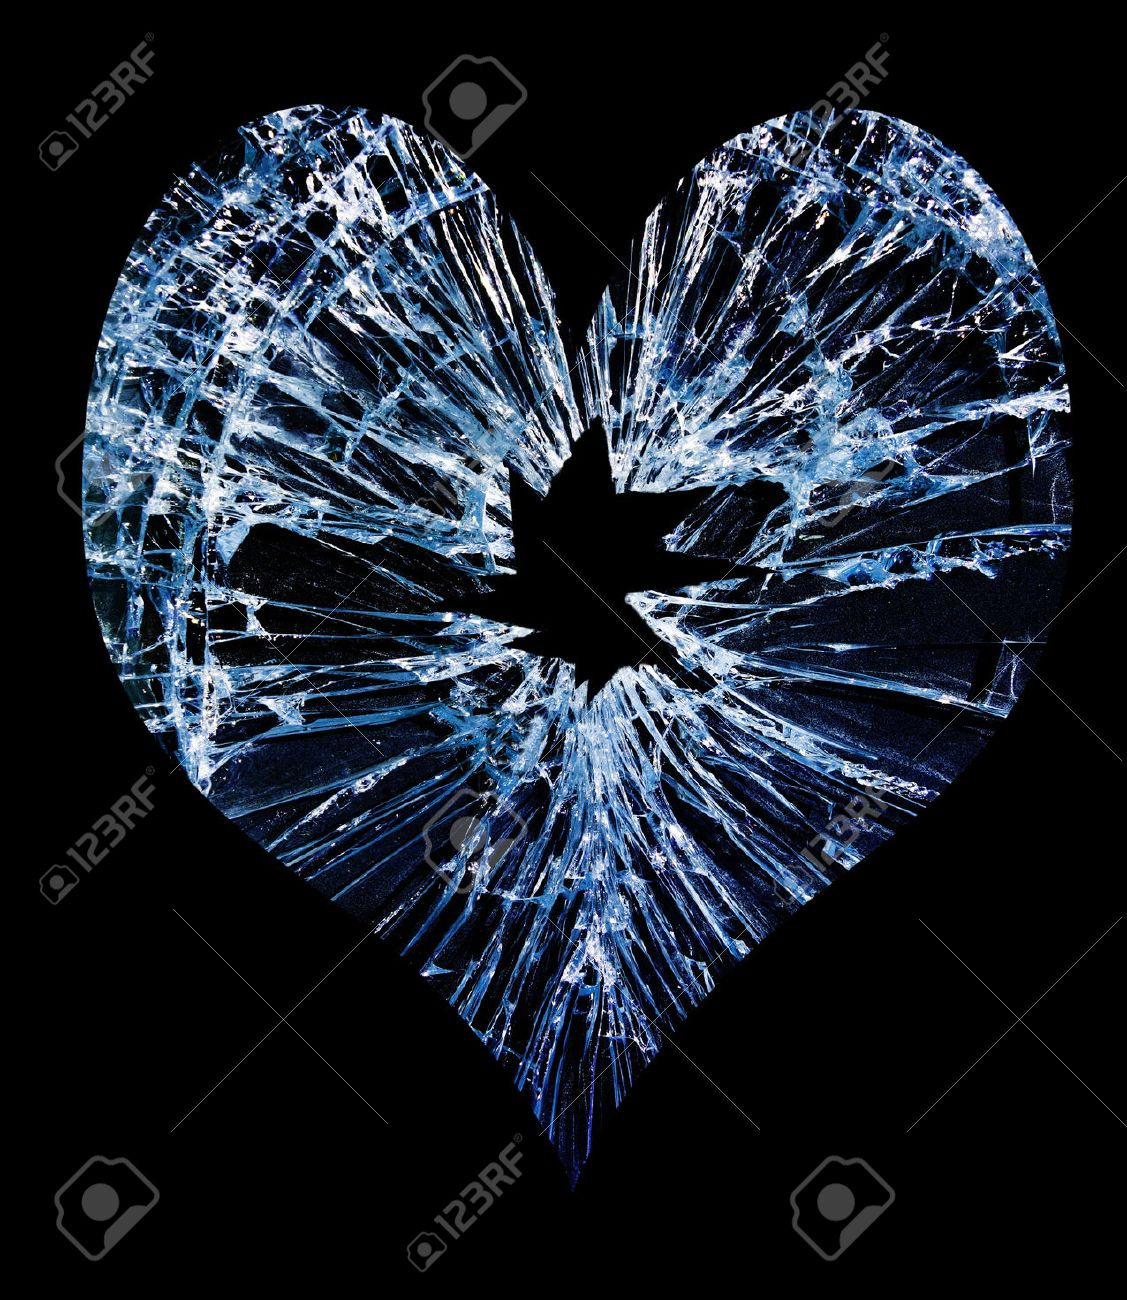 heart shaped shattered glass with a hole in the middle - 29100127